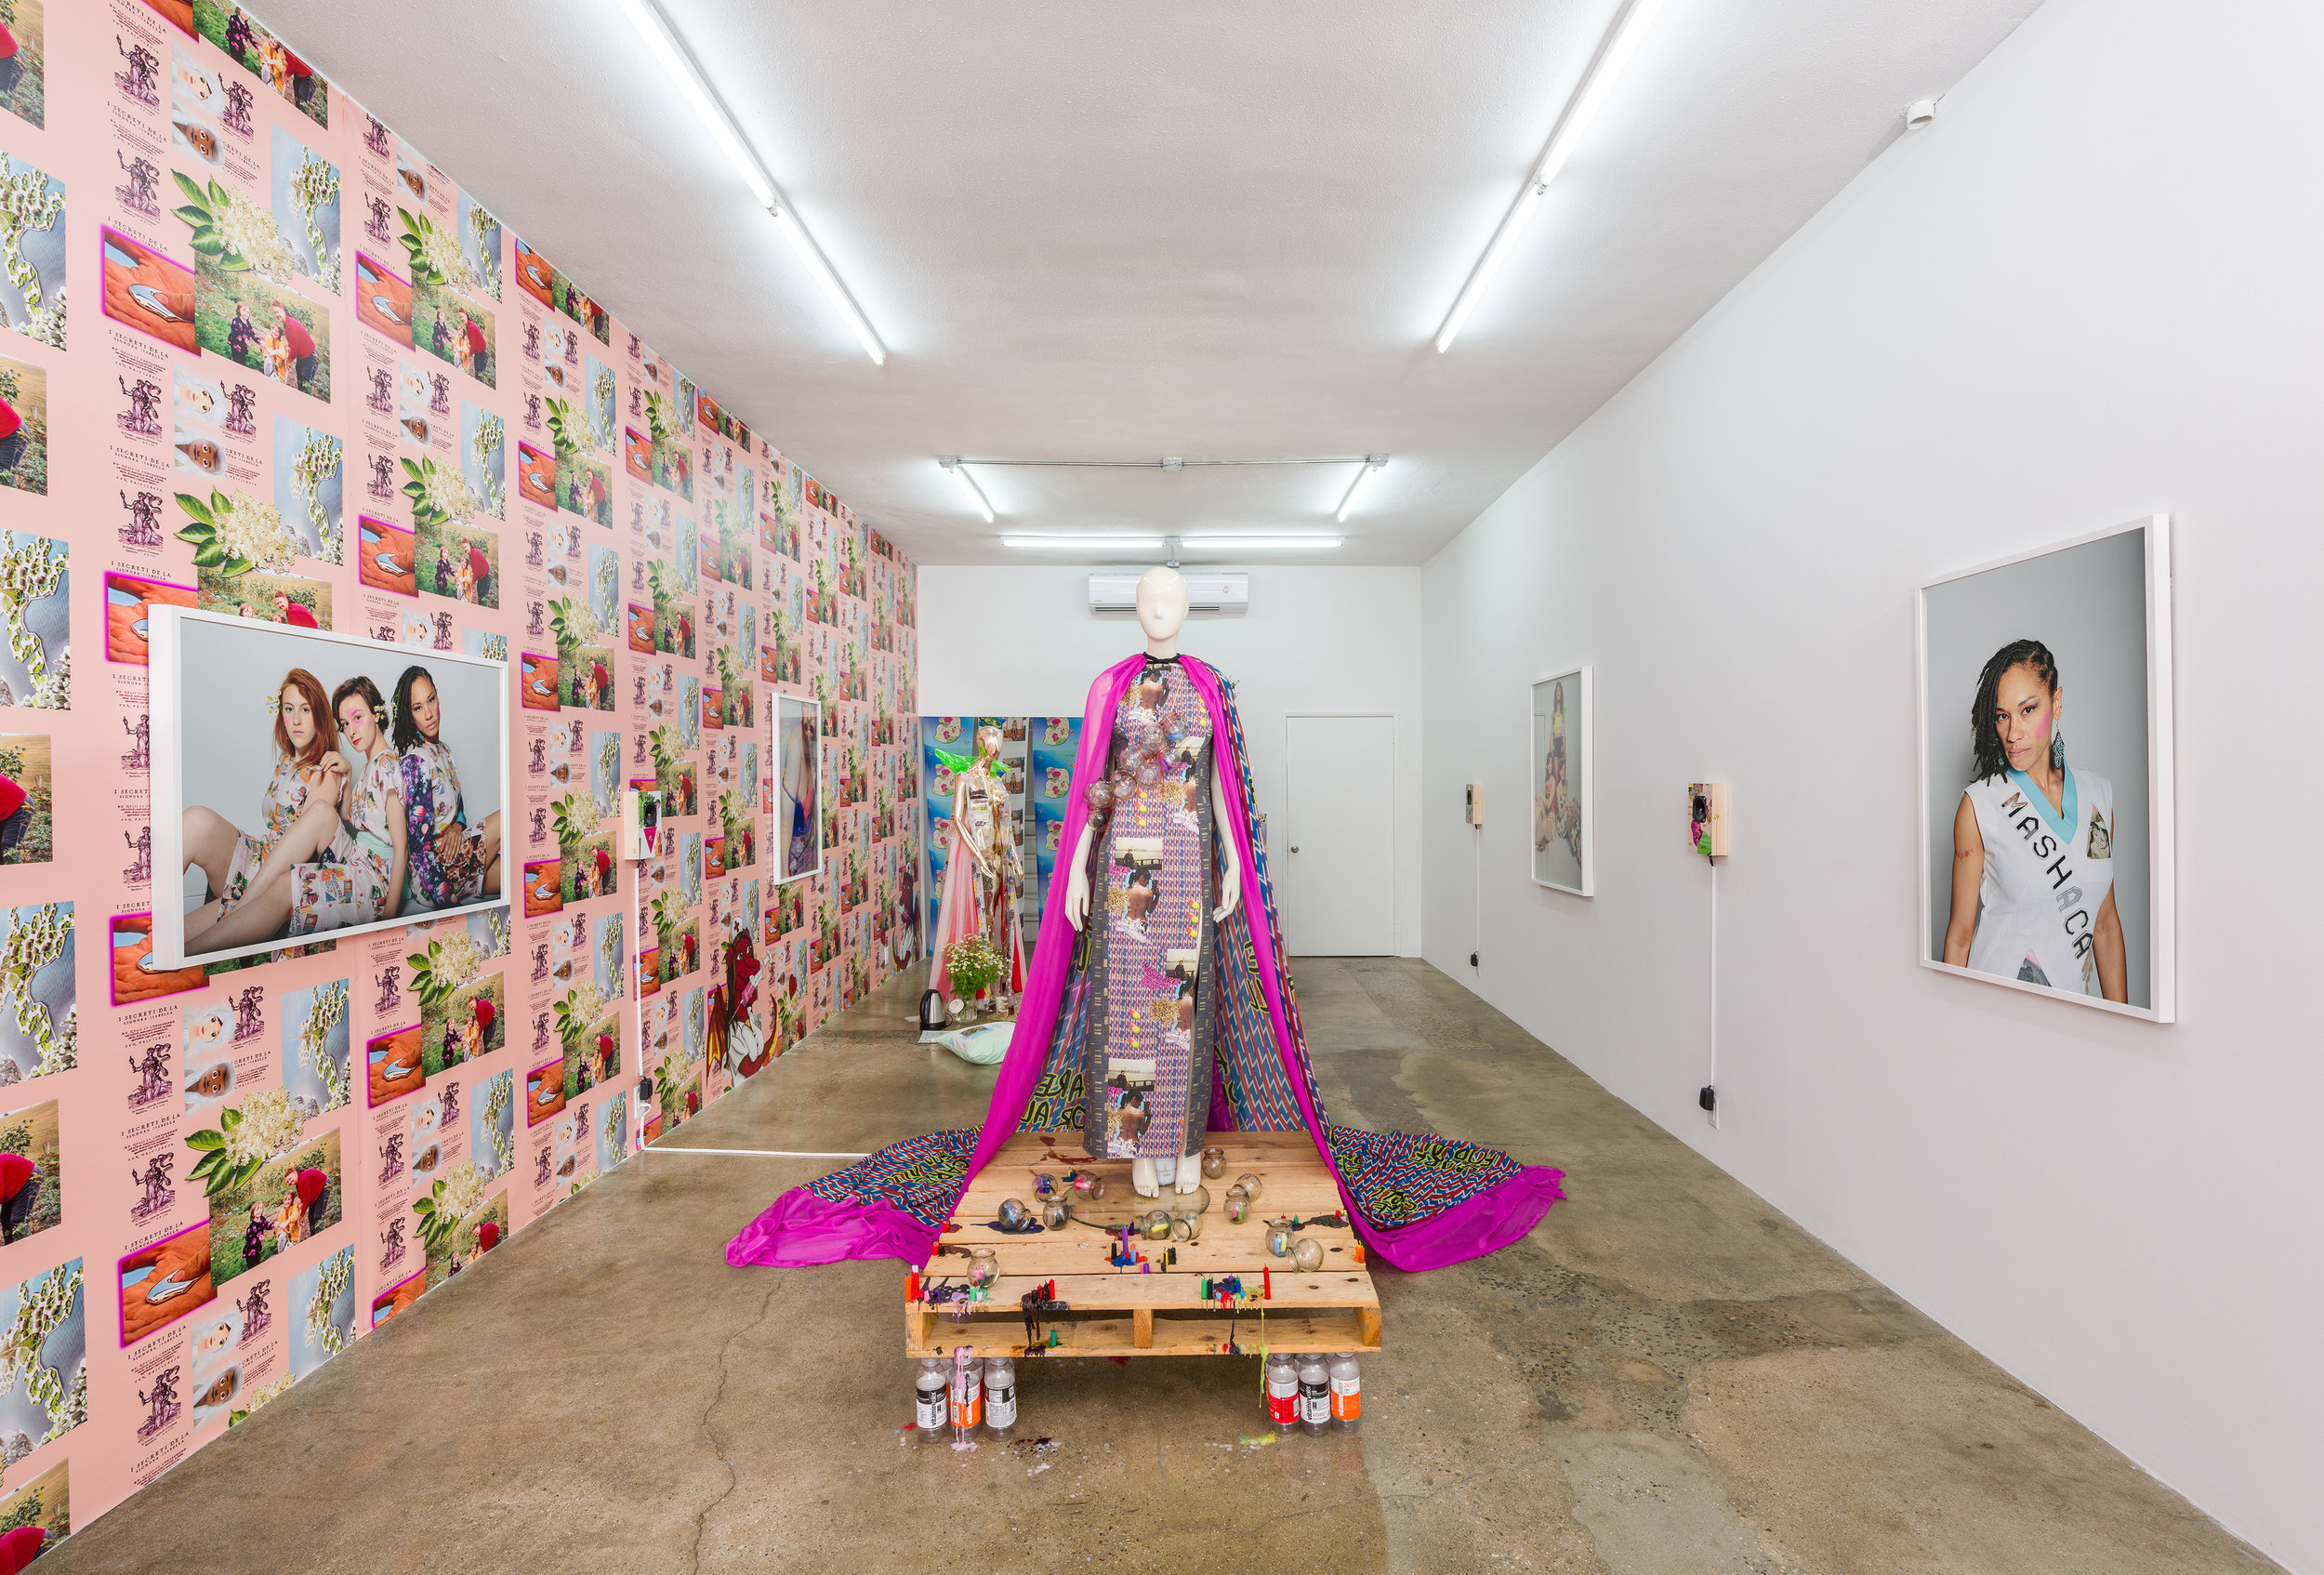 Installation view of  Molly Surazhsky   Mashacare Home of the Freaks, Misfits, & Weirdoes   July 14 - August 18, 2019  Photo by Ruben Diaz   Link to press release.